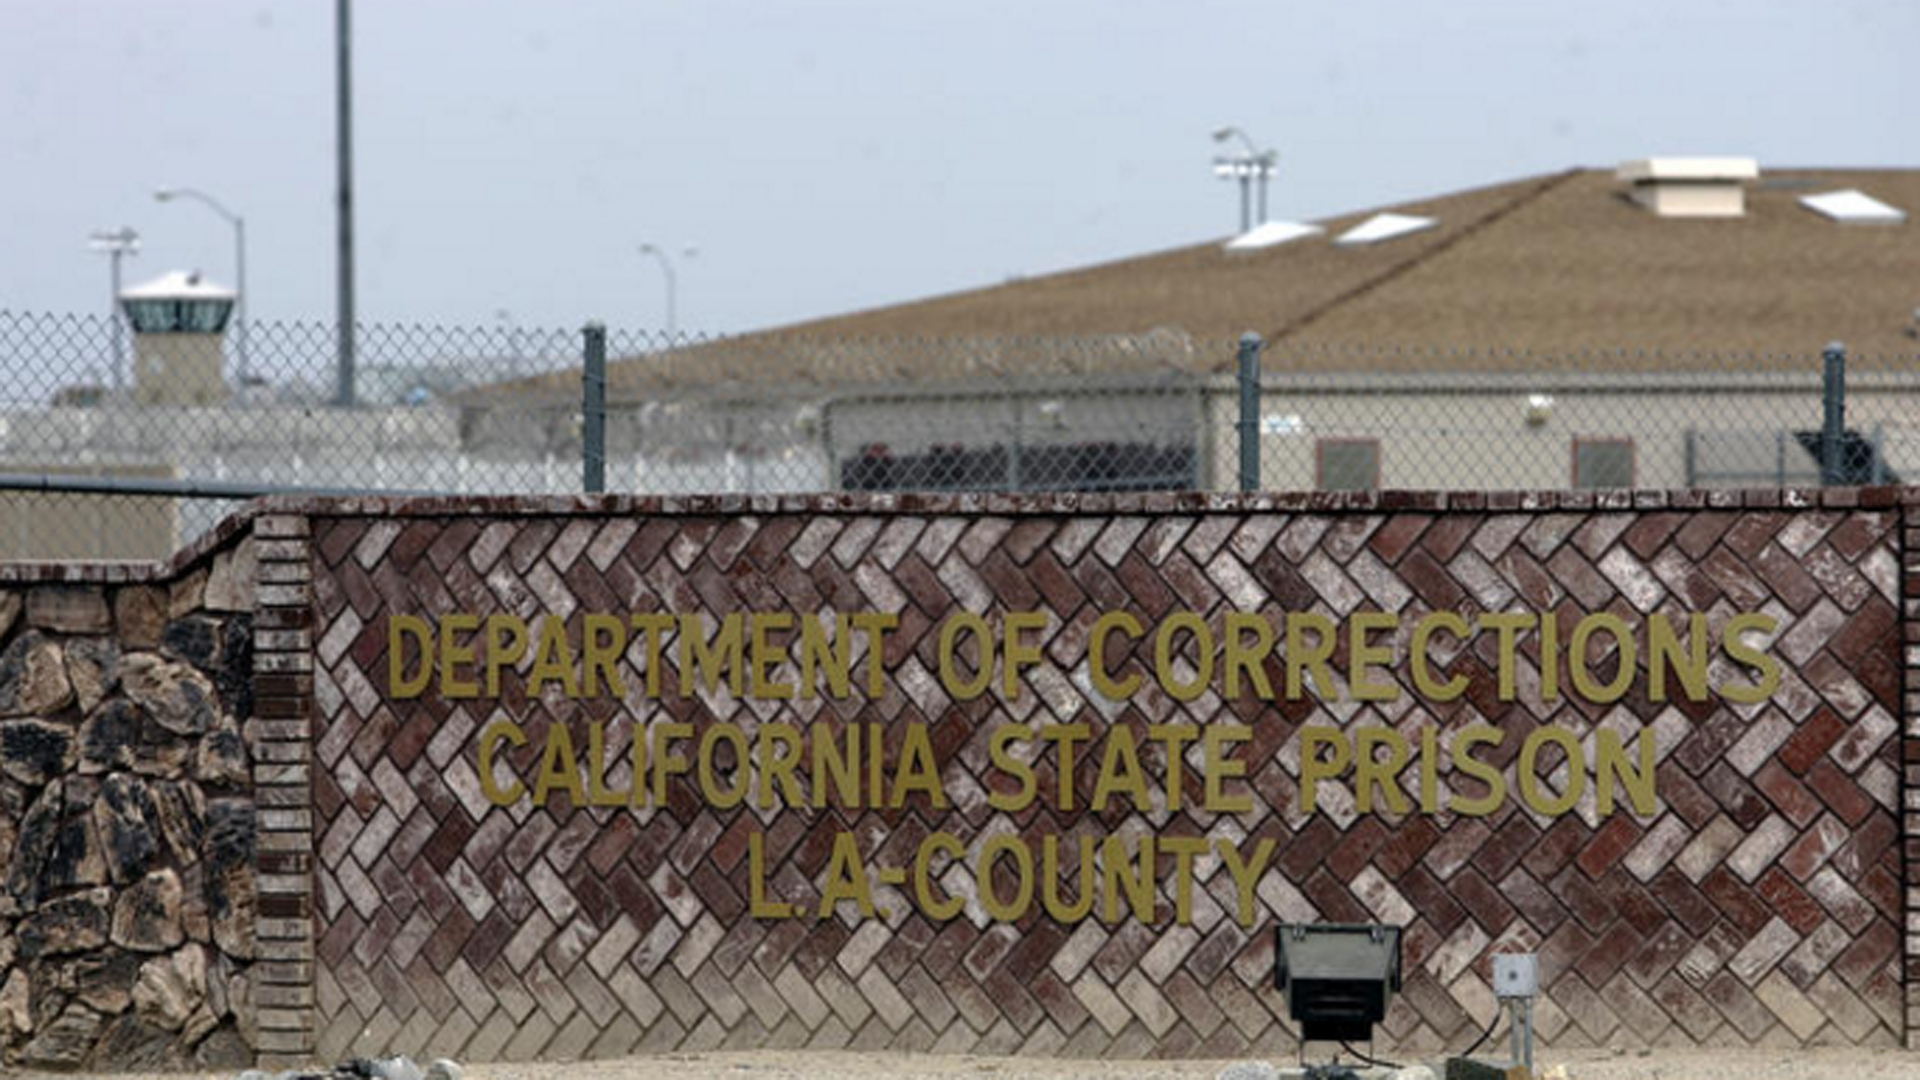 California State Prison-Los Angeles County in Lancaster is pictured. (Credit: Spencer Weiner / Los Angeles Times)